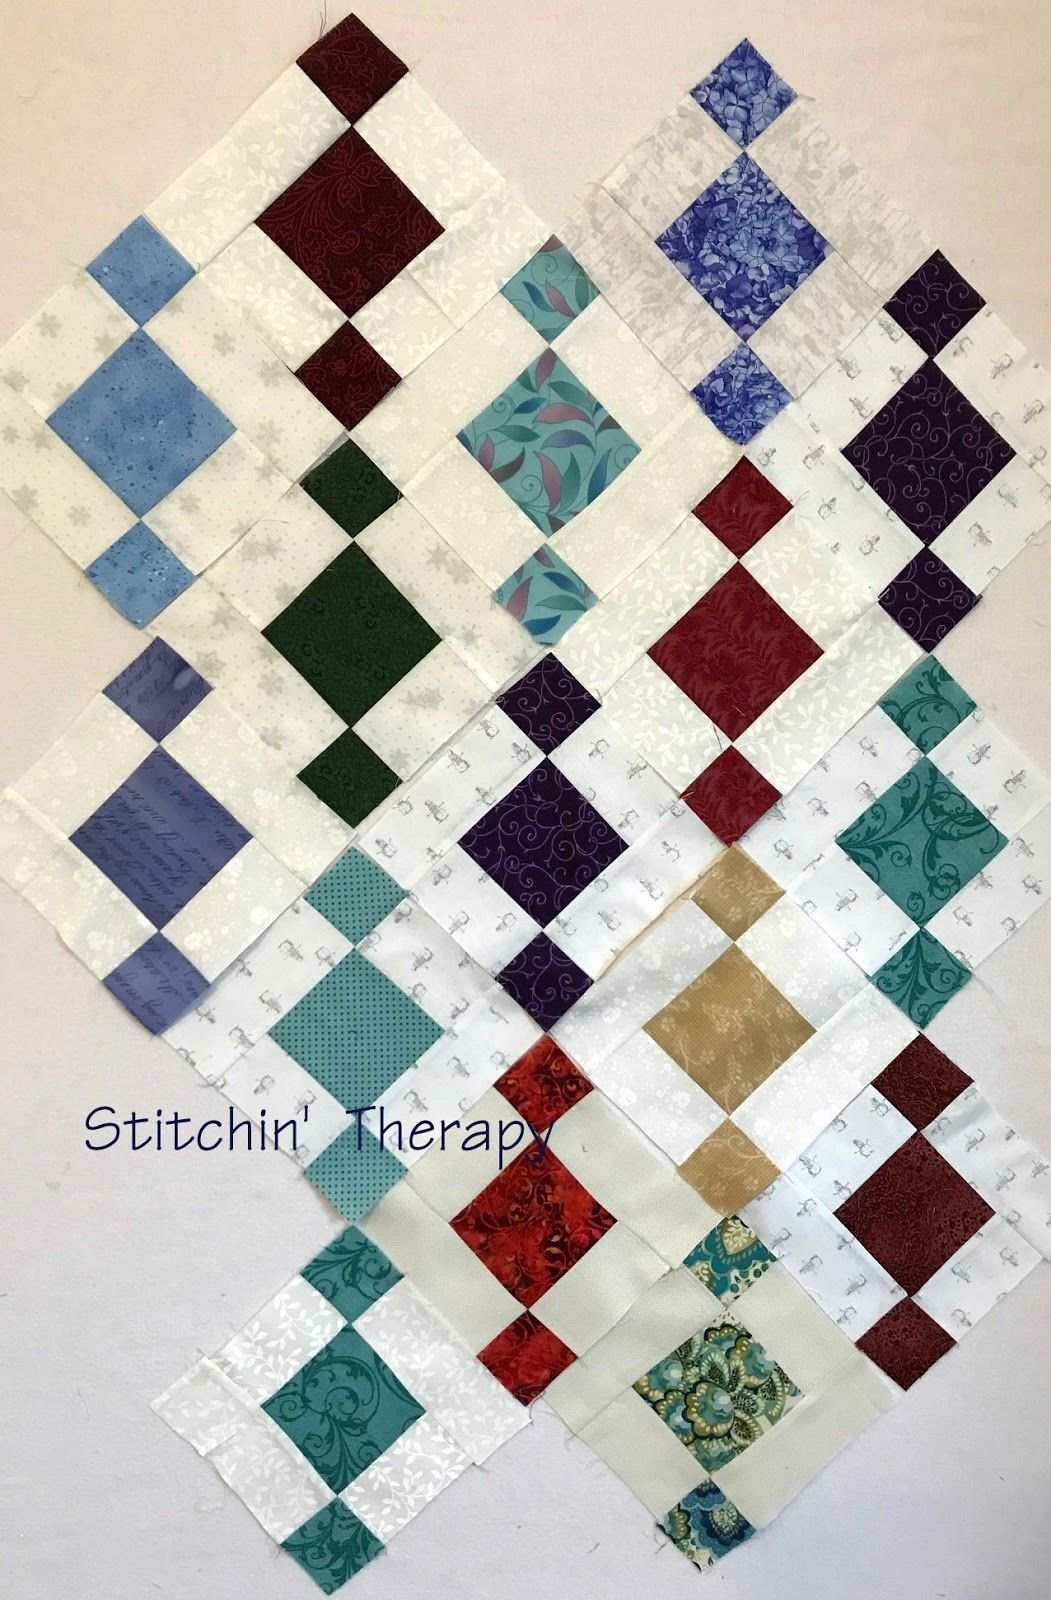 Don T Say That S Word Around This Part Of The Country I Heard The Stores Sold Out Of Milk Bread And Quilt Modernen Quiltmuster Patchwork Und Quilten